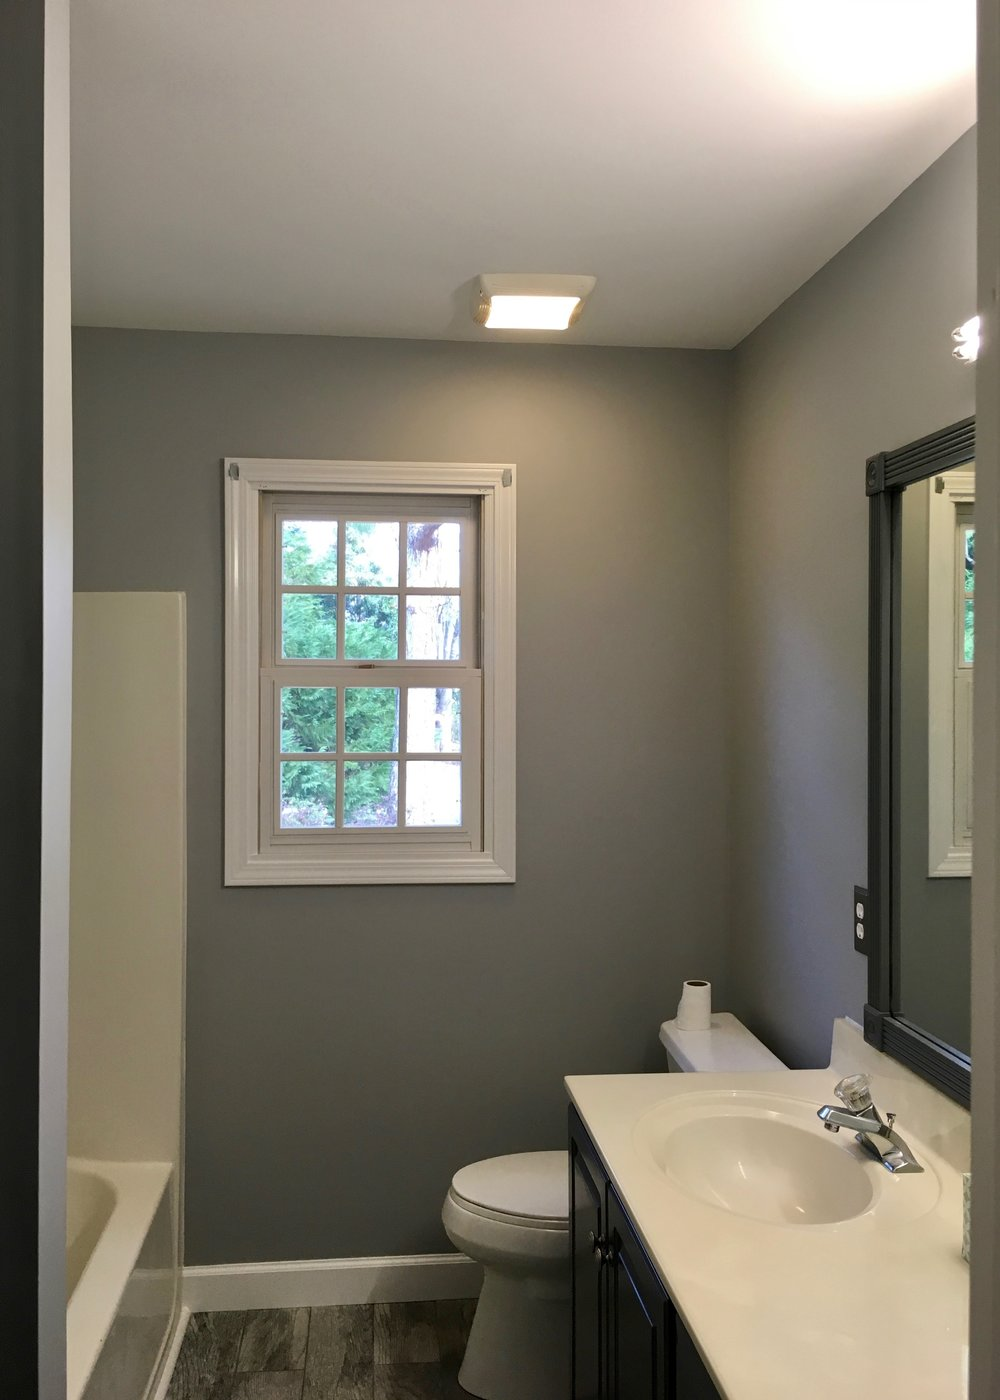 COMPLETE BATHROOM REMODEL: POPCORN CEILING REMOVAL & PAINT, DRYWALL REPAIR, WALLS, DOOR, TRIM, MIRROR, & VANITY—SPRAYED